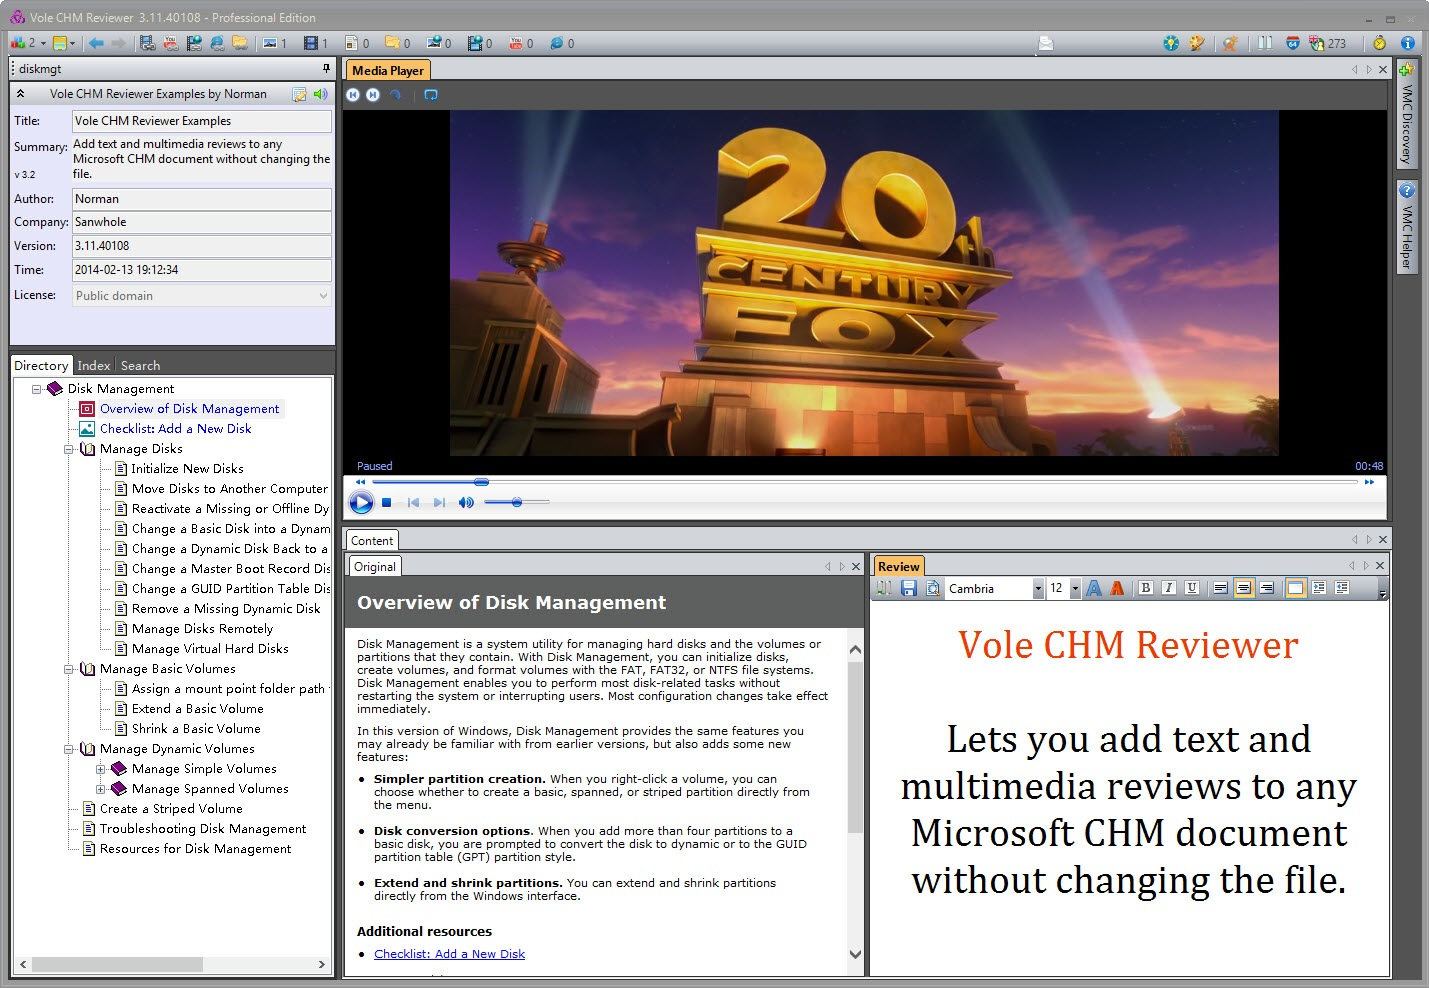 Vole CHM Reviewer Professional Edition Screenshot